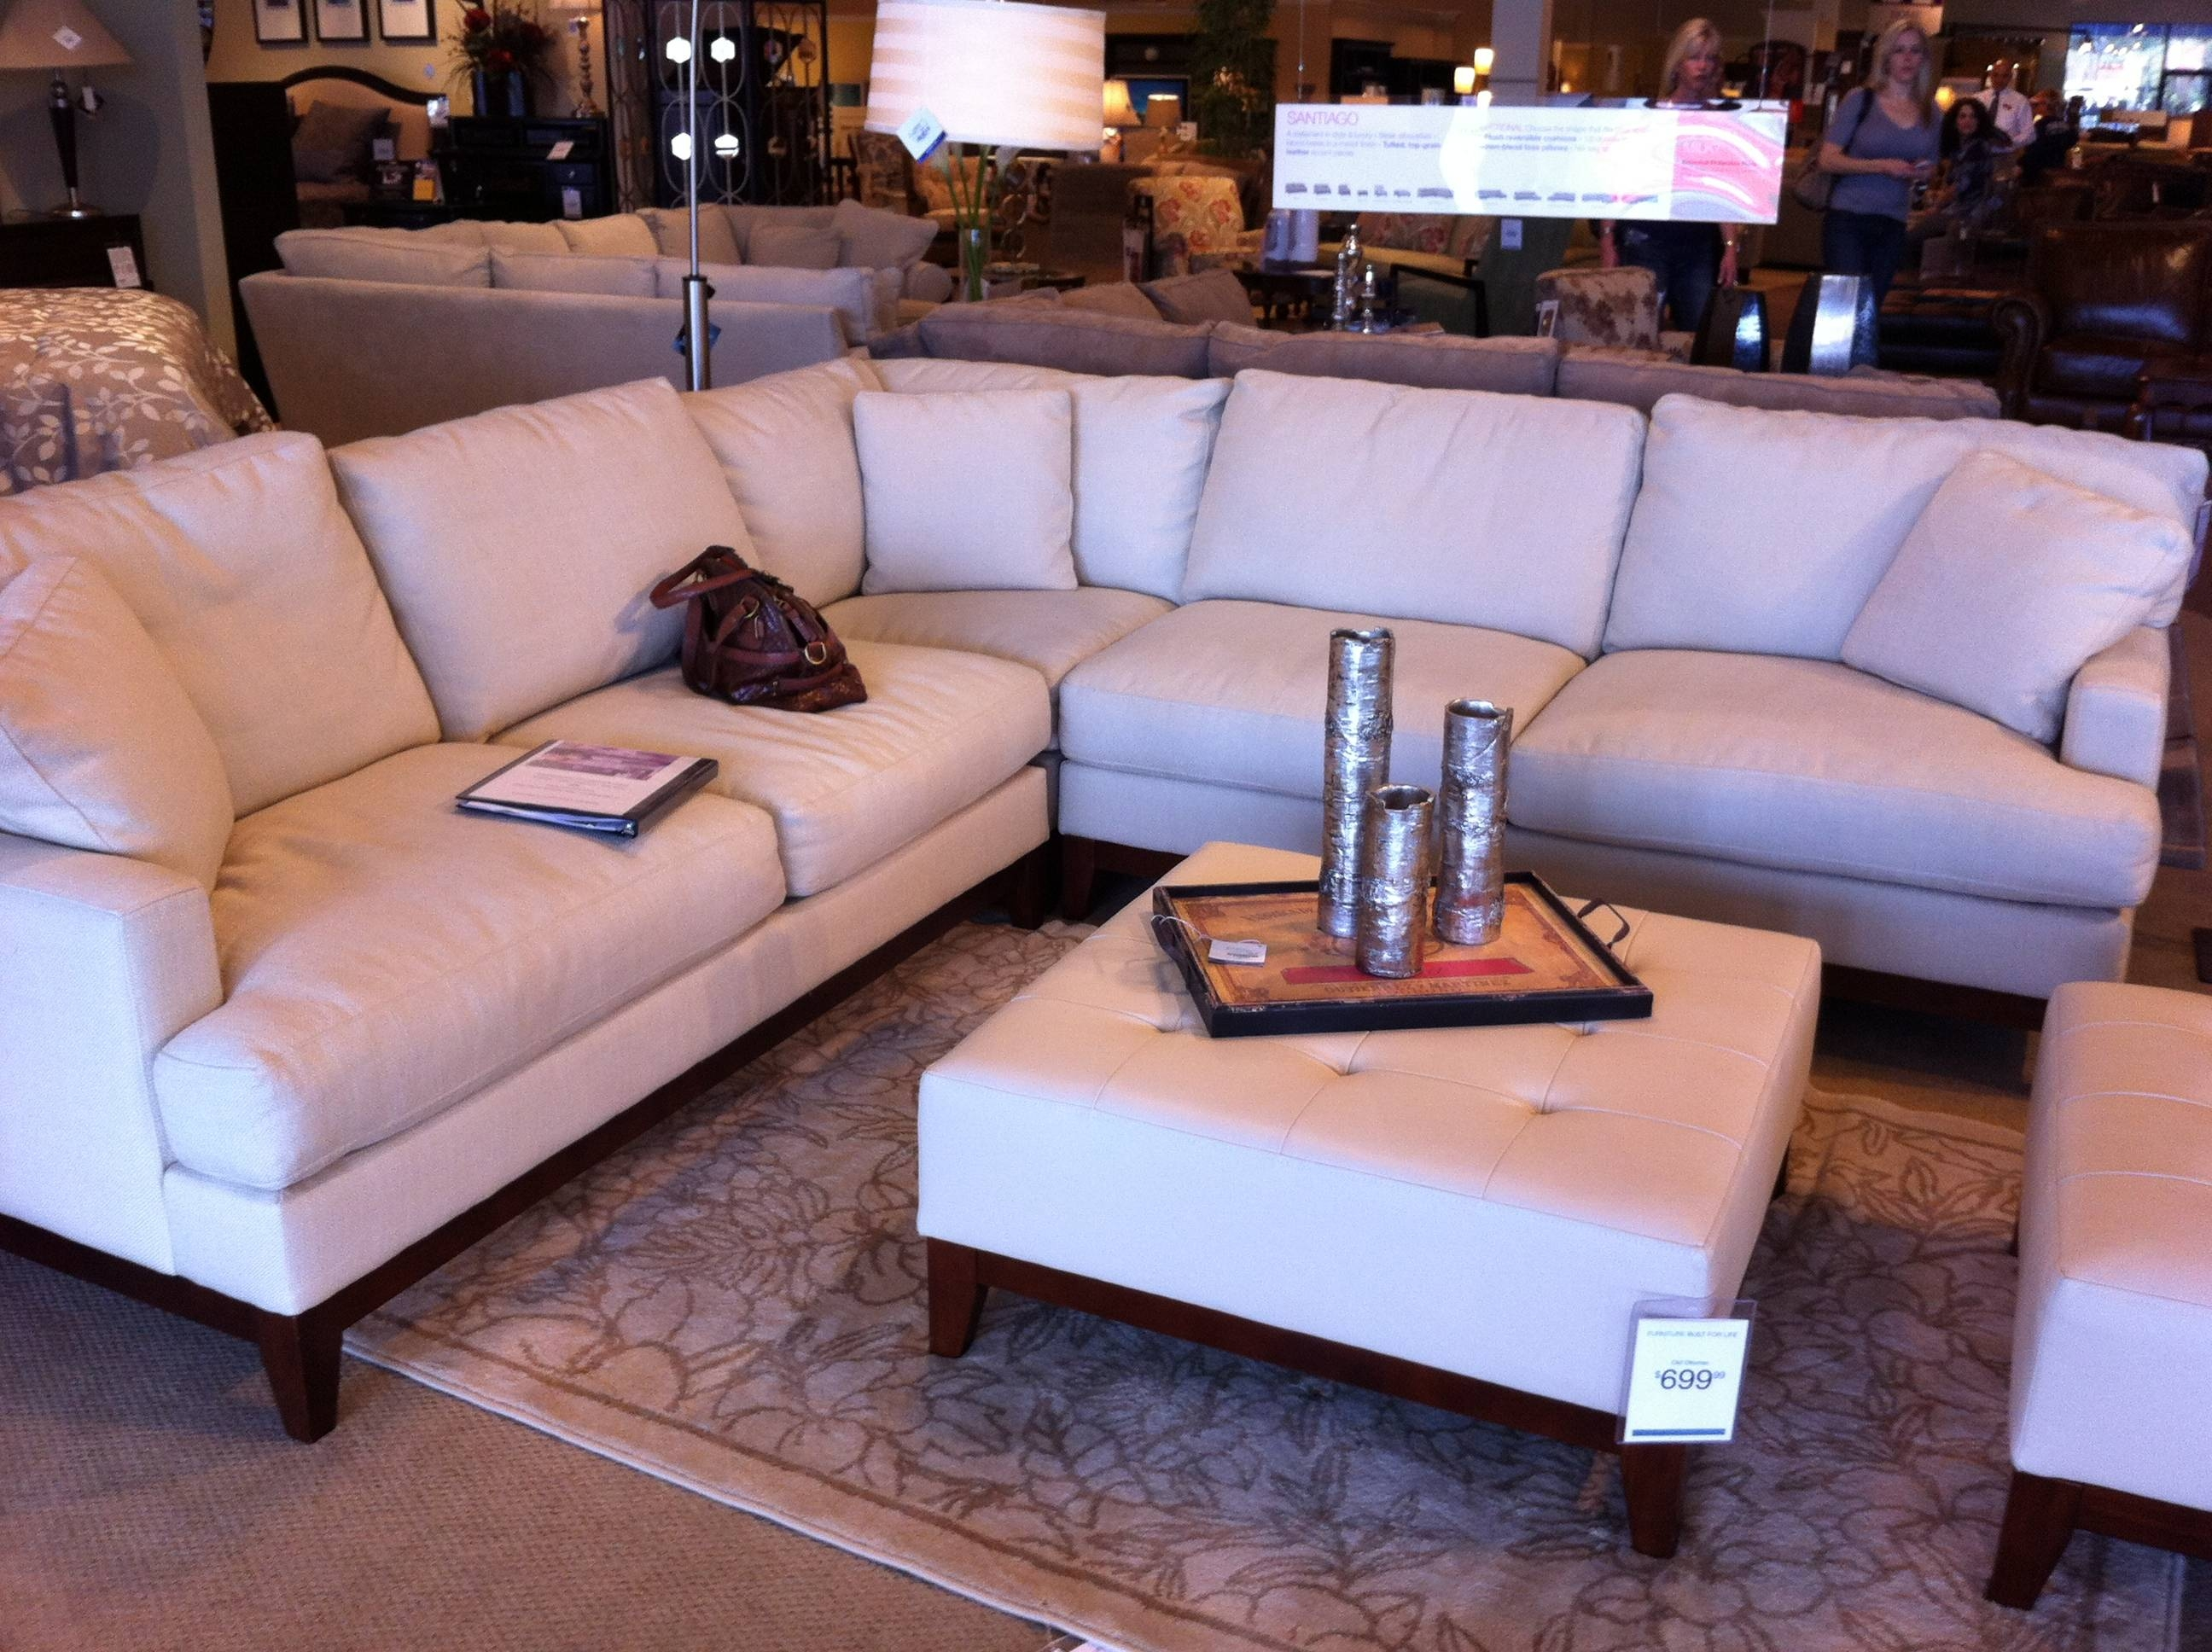 Amalfi Sectional Sofa With Cuddler | Tehranmix Decoration intended for Eco Friendly Sectional Sofa (Image 5 of 30)